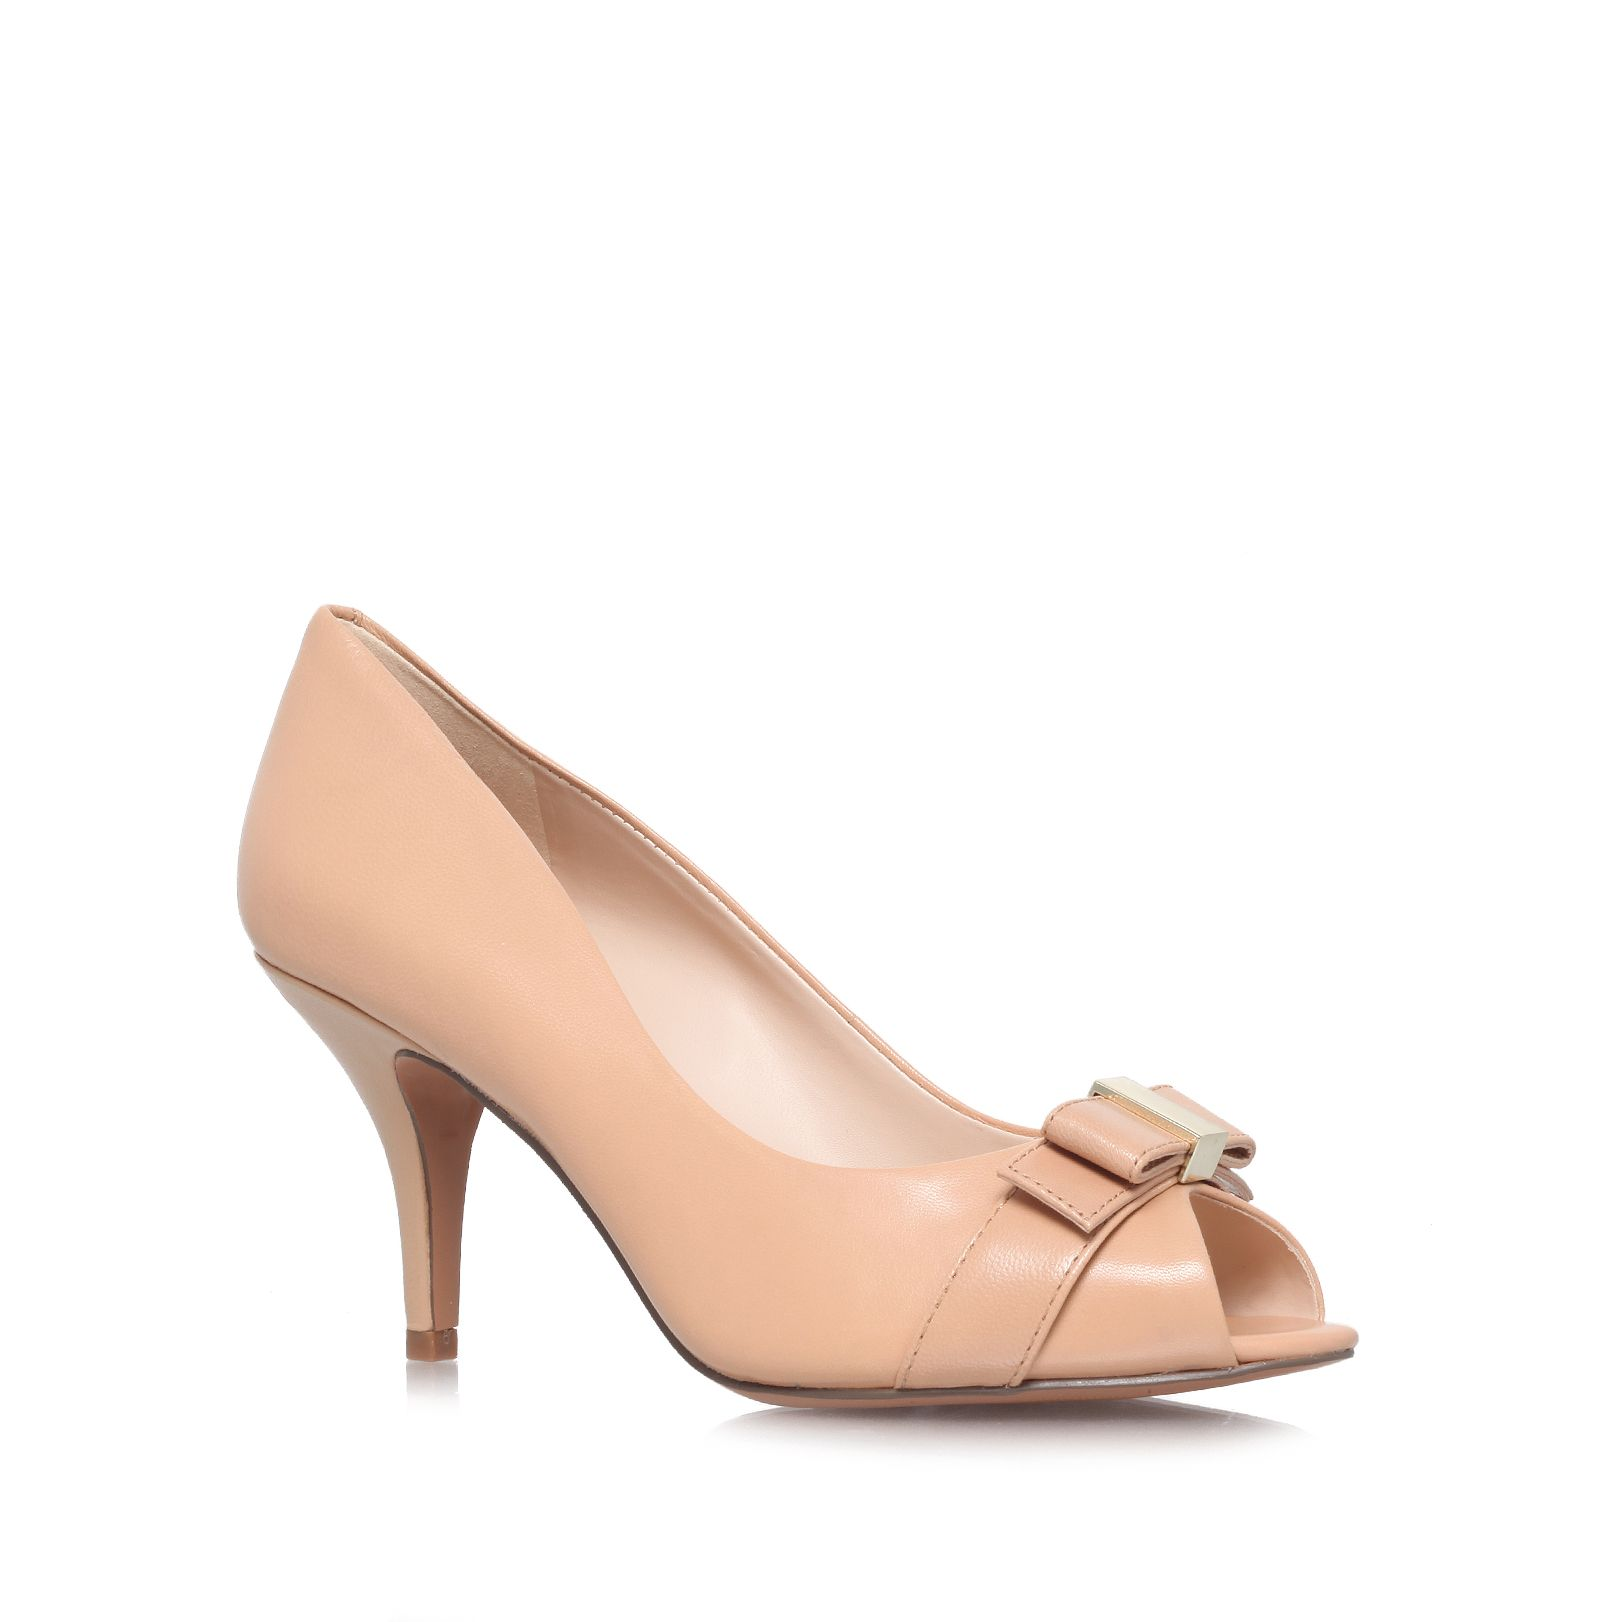 Olivia mid heel court shoes